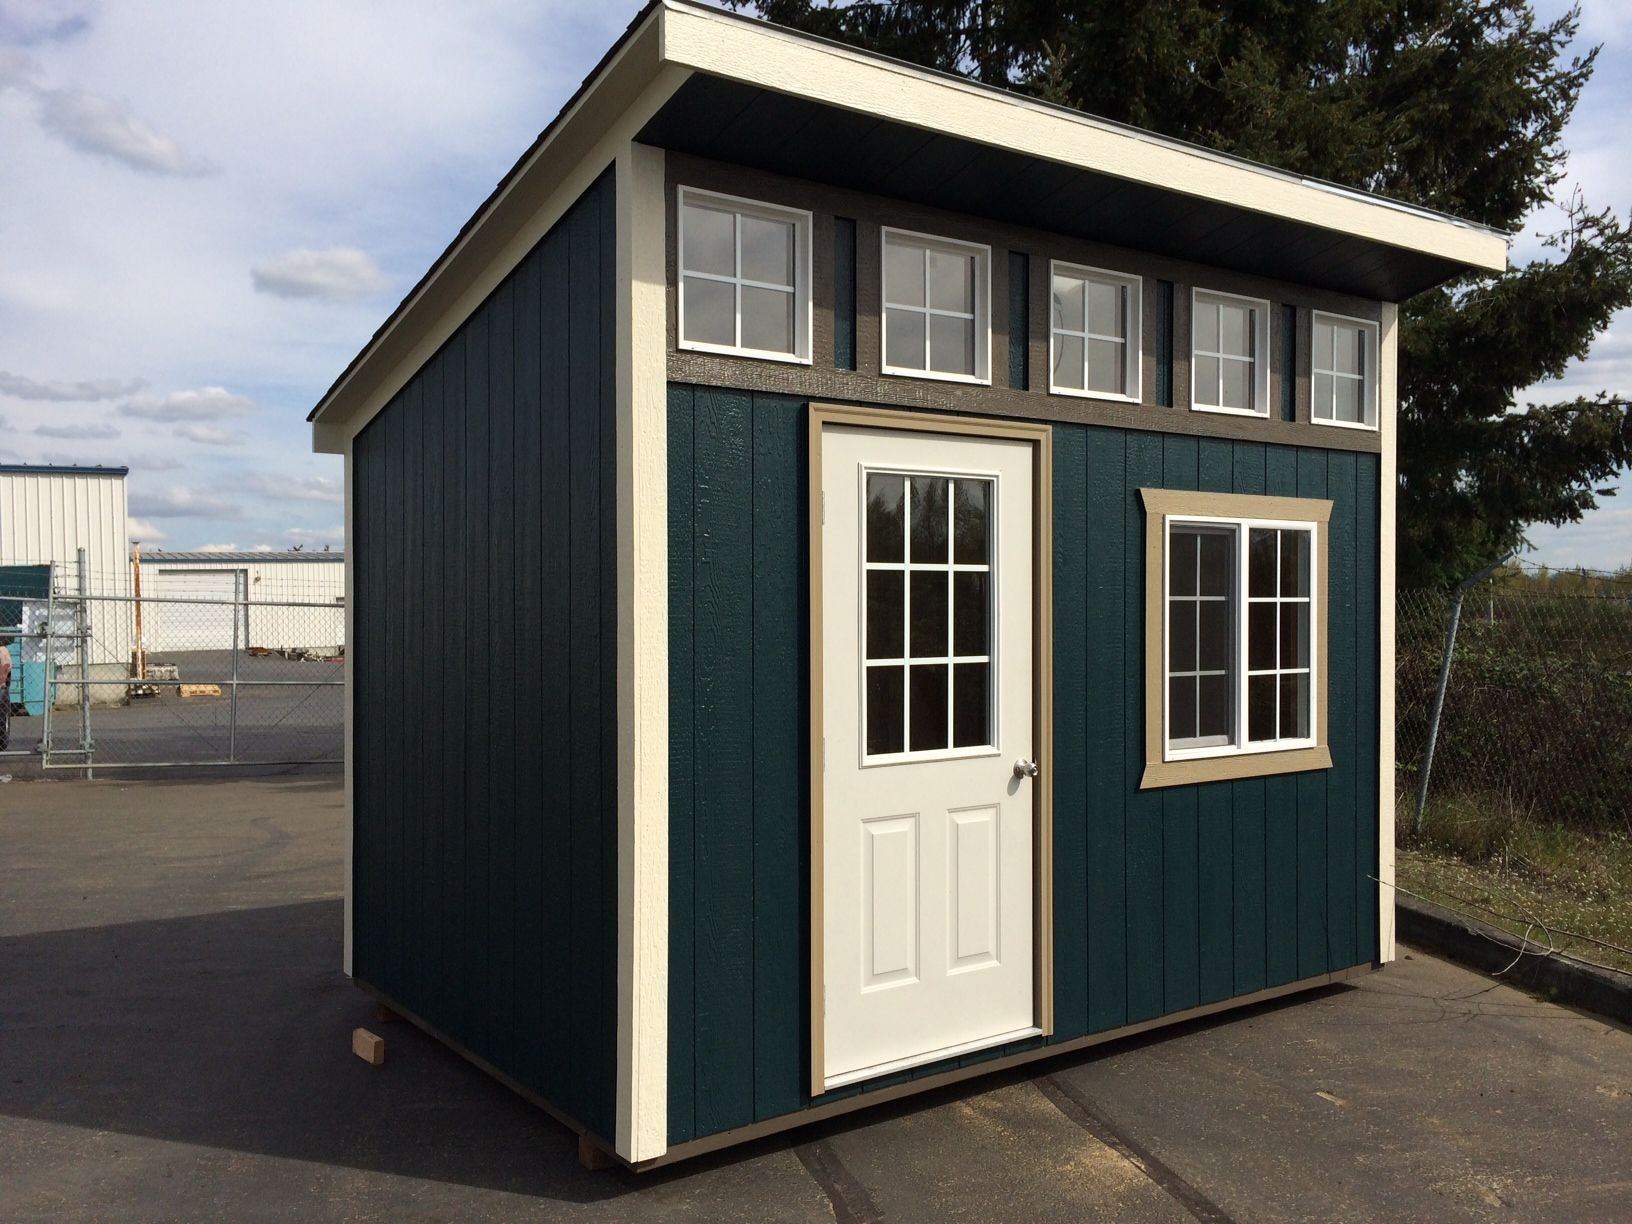 slant roof style with dormer storage garden shed tool shed